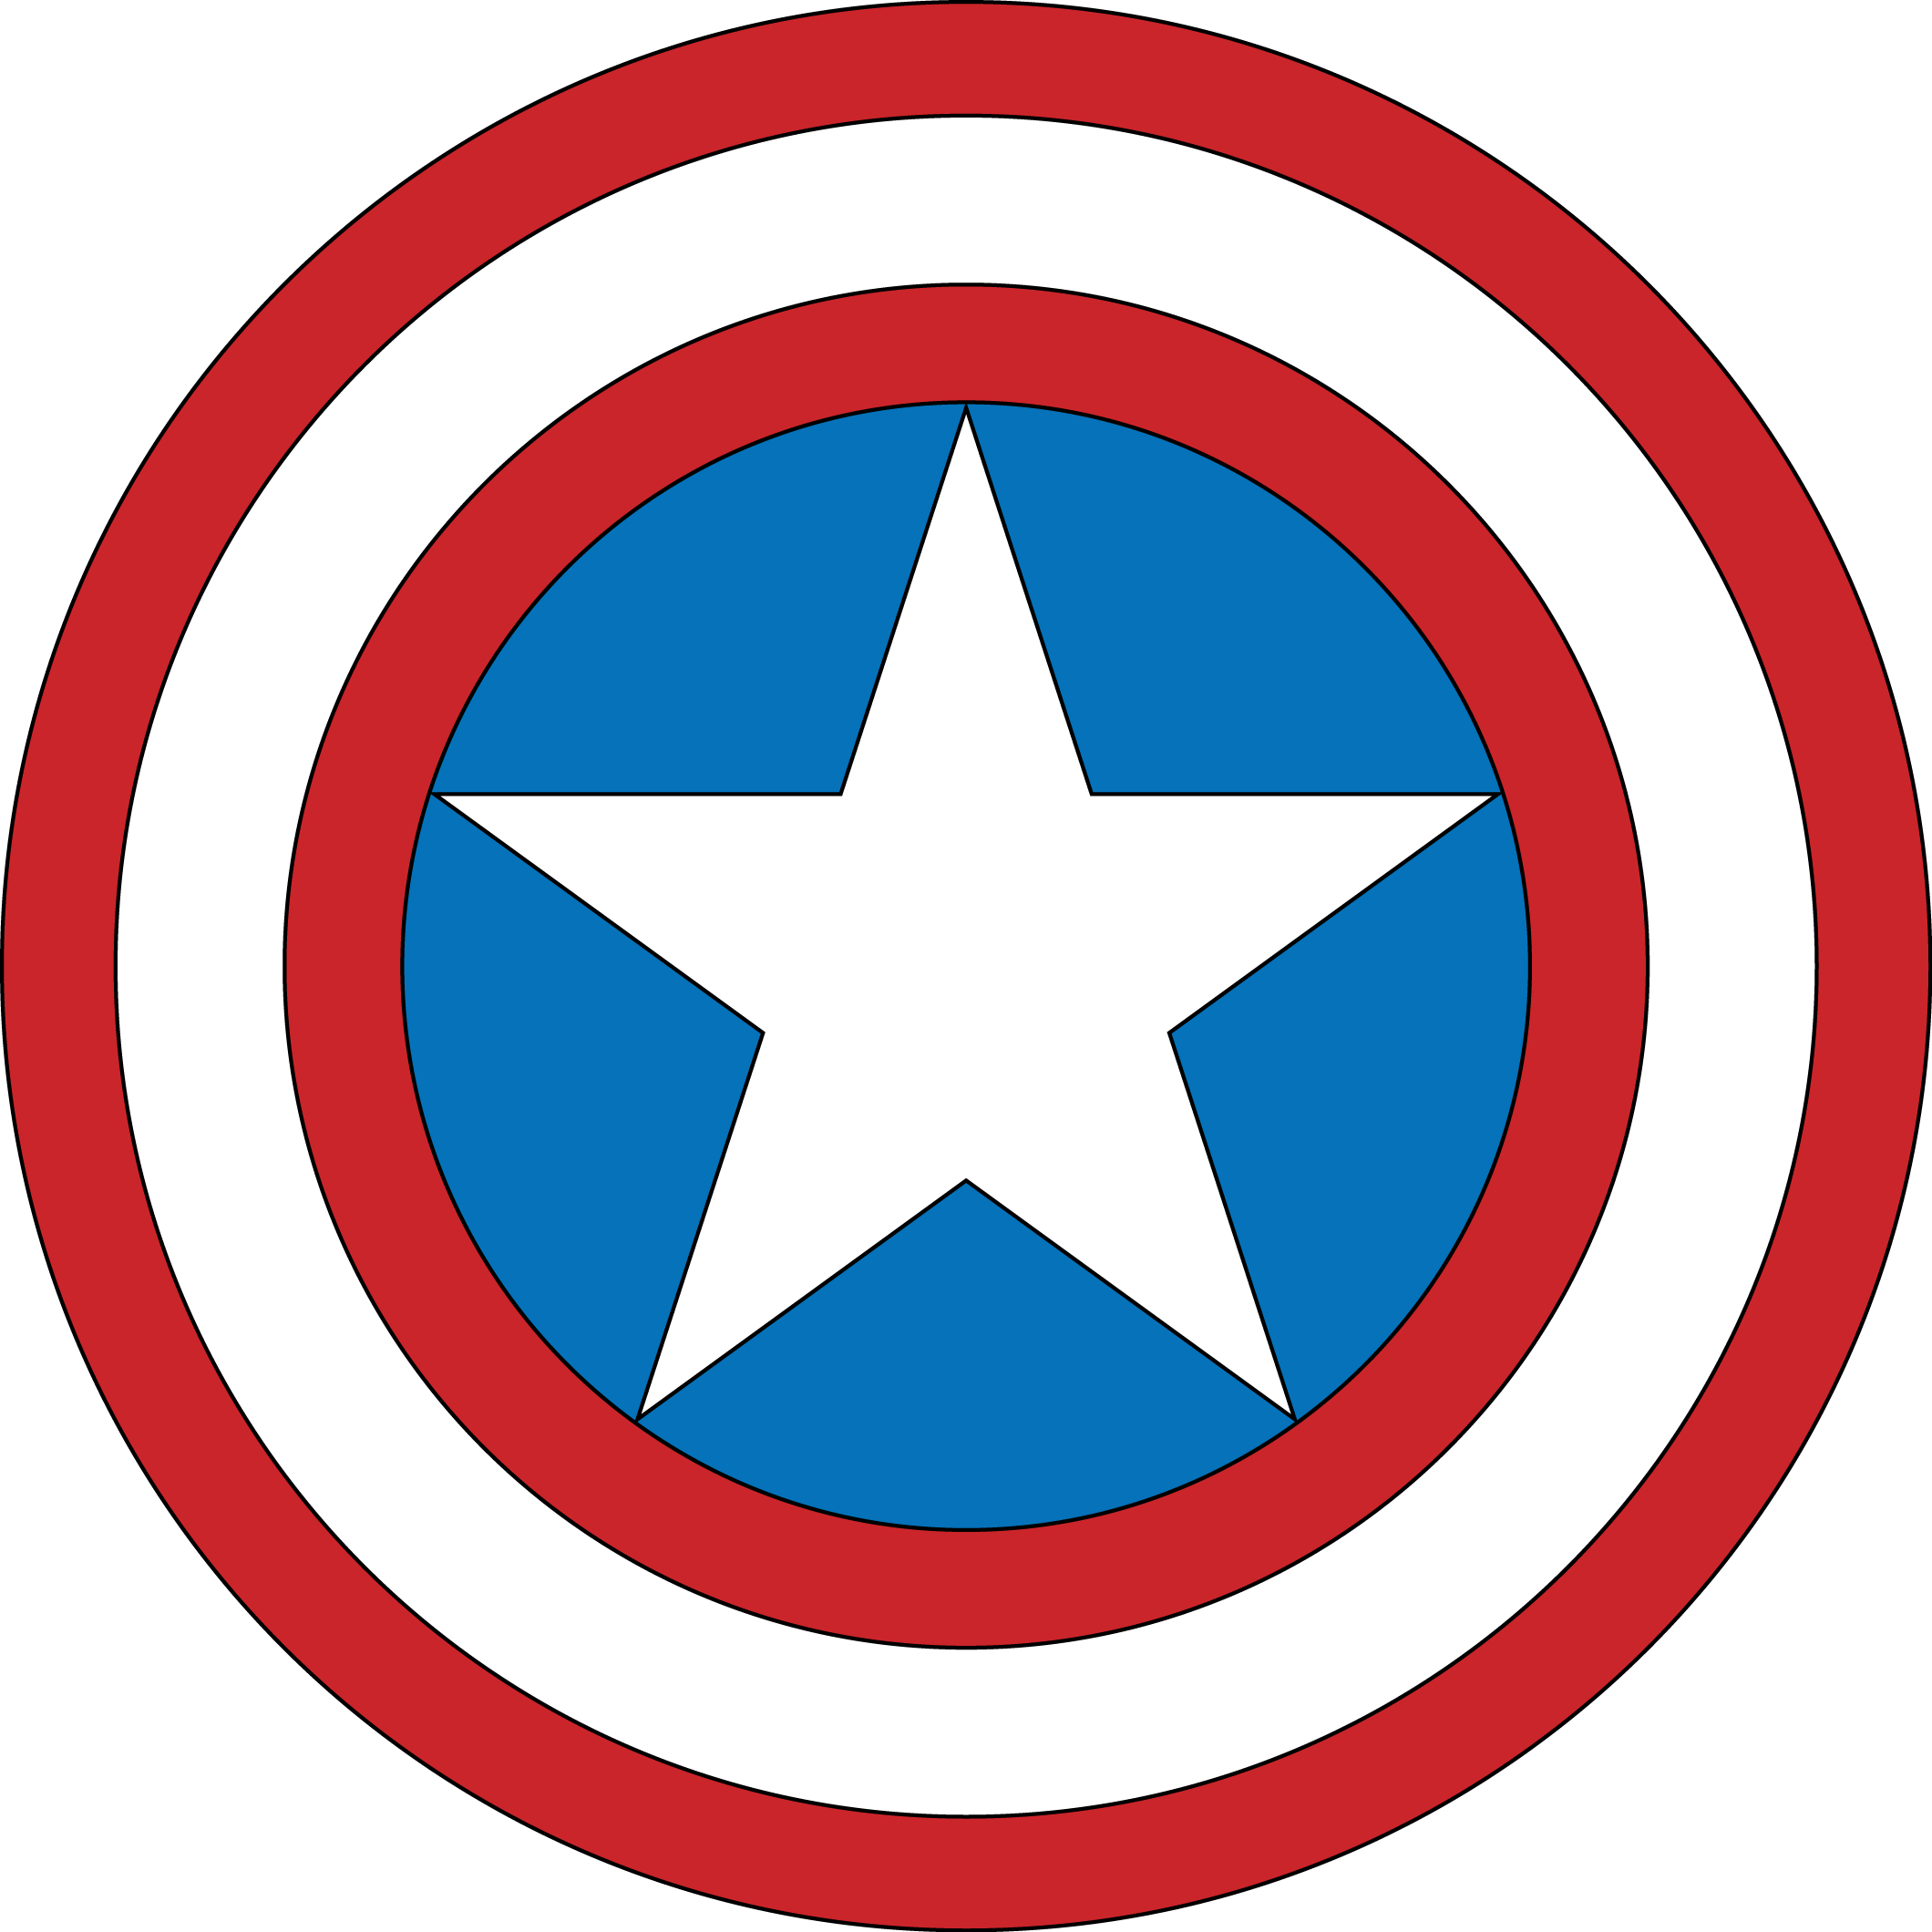 Captain america logo png. File bouclier wikipedia filebouclier